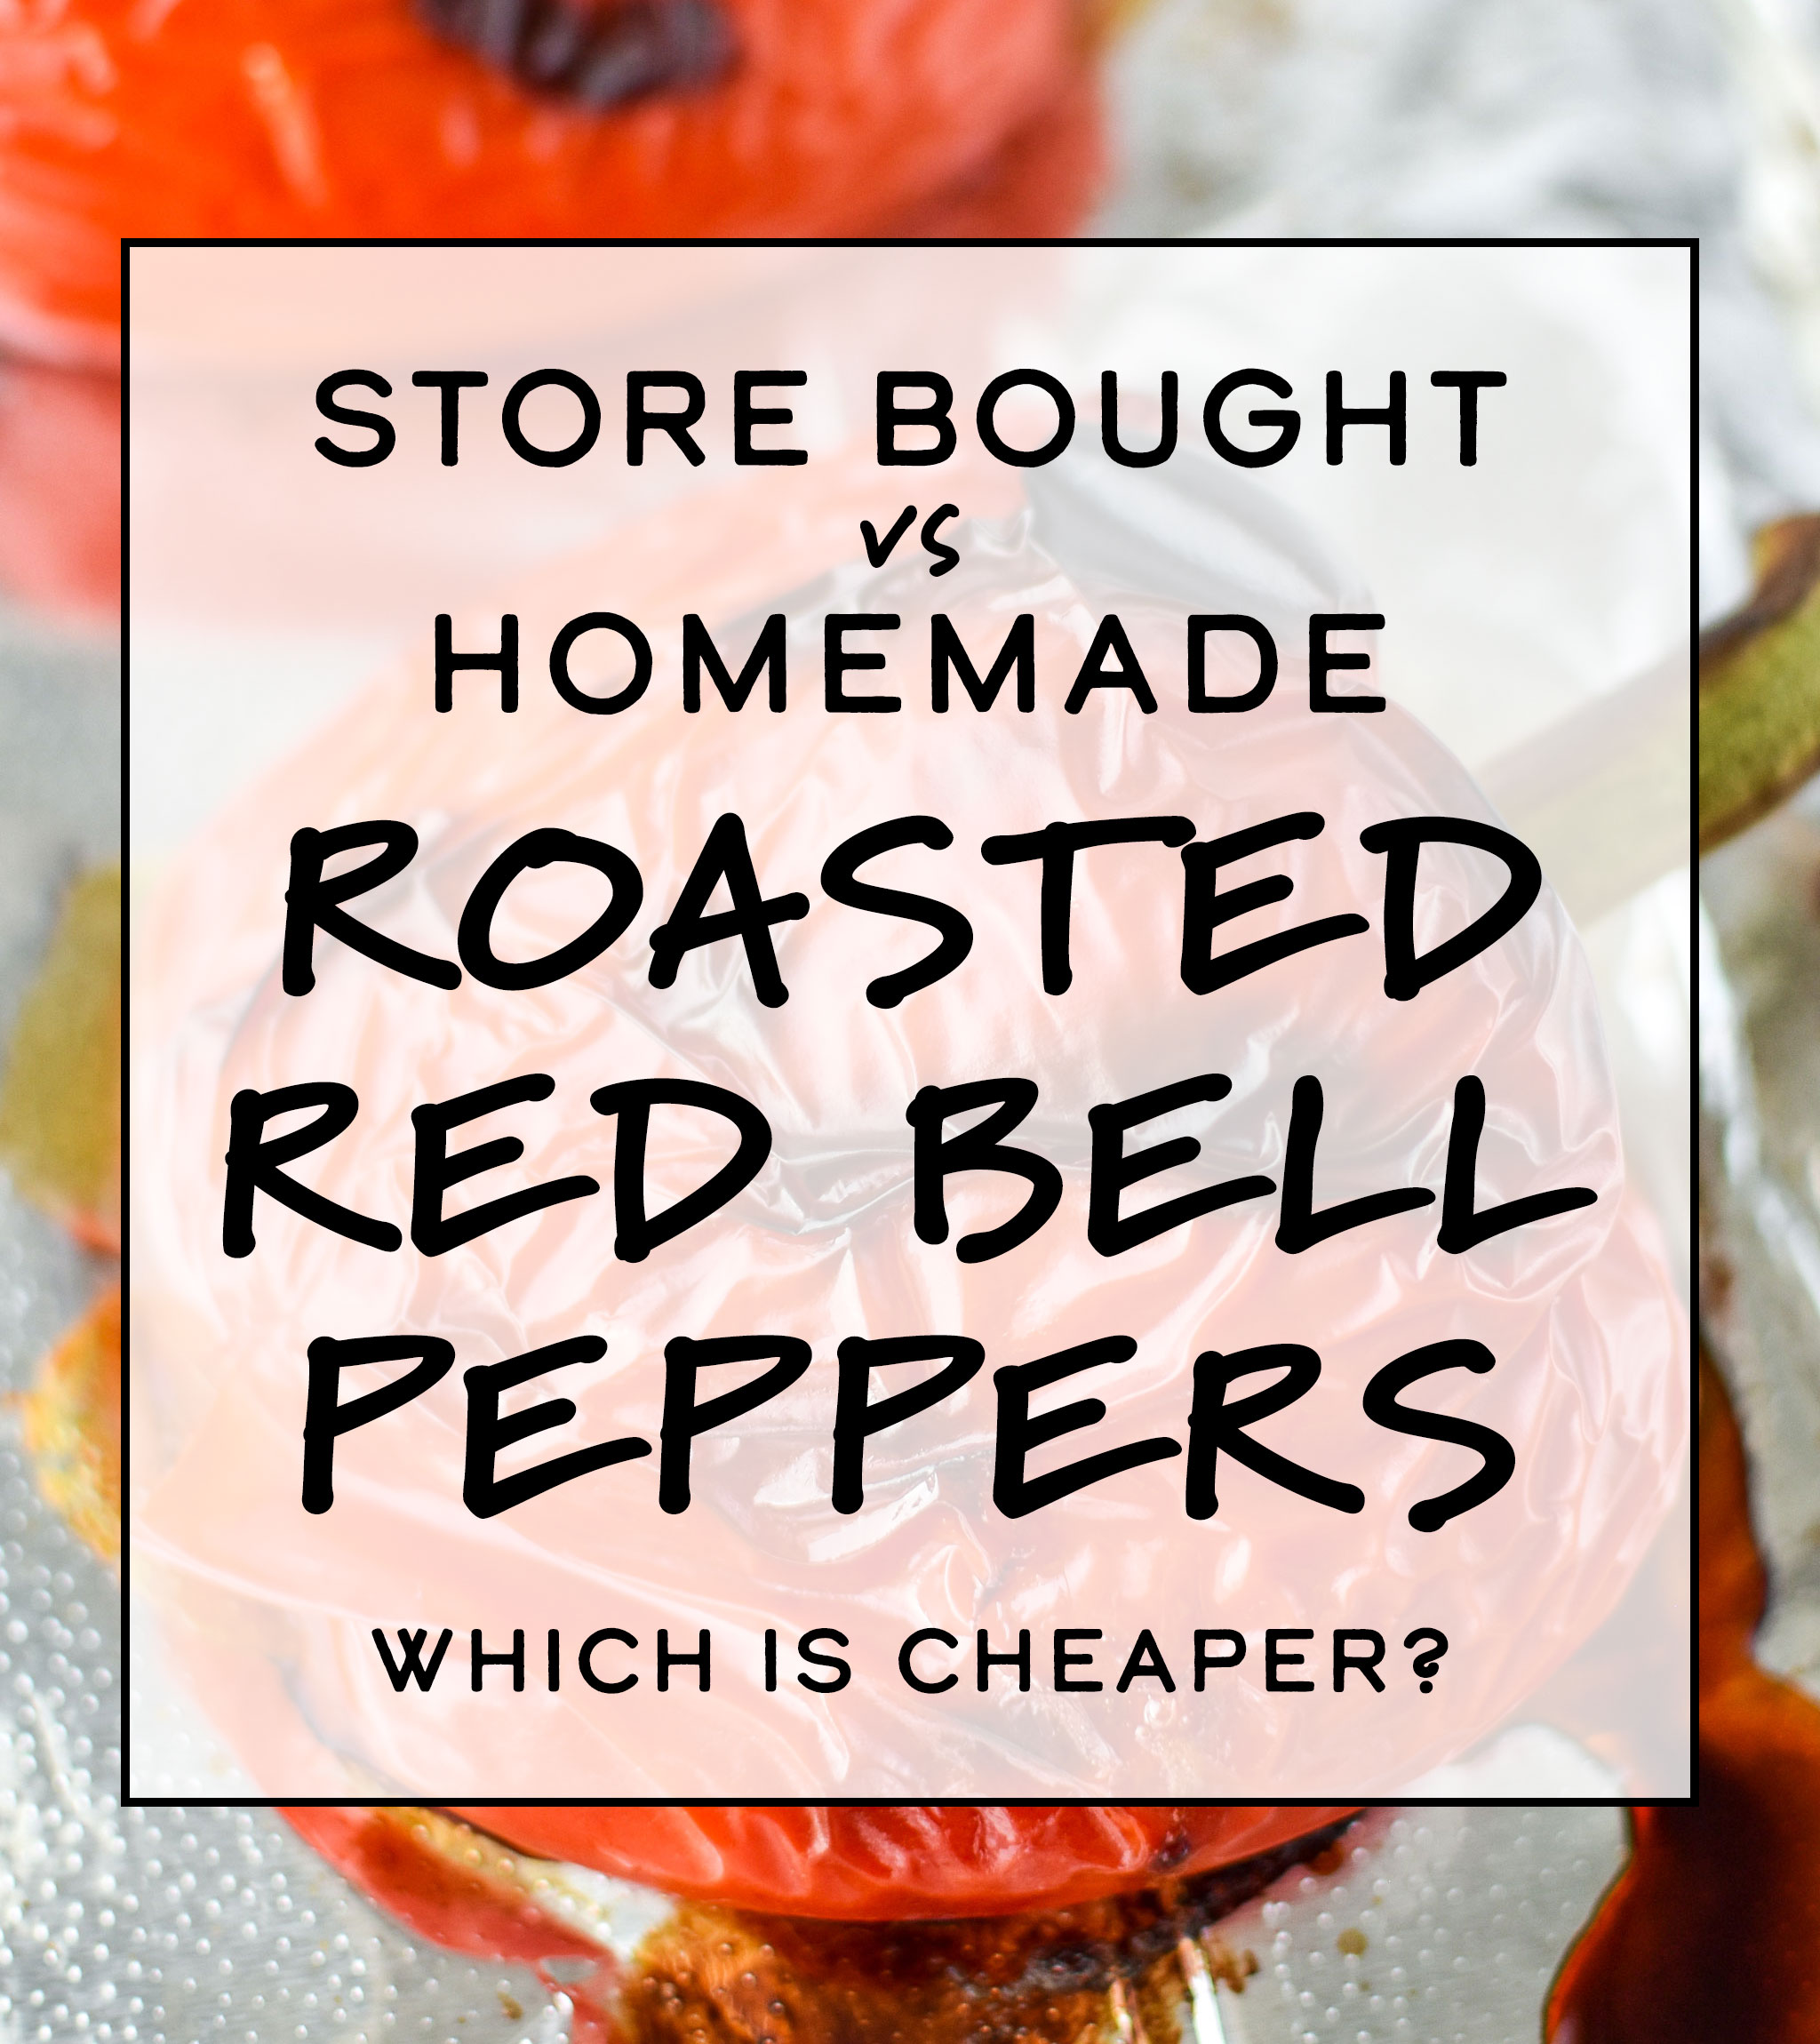 cover photo for store bought vs homemade roasted red bell peppers